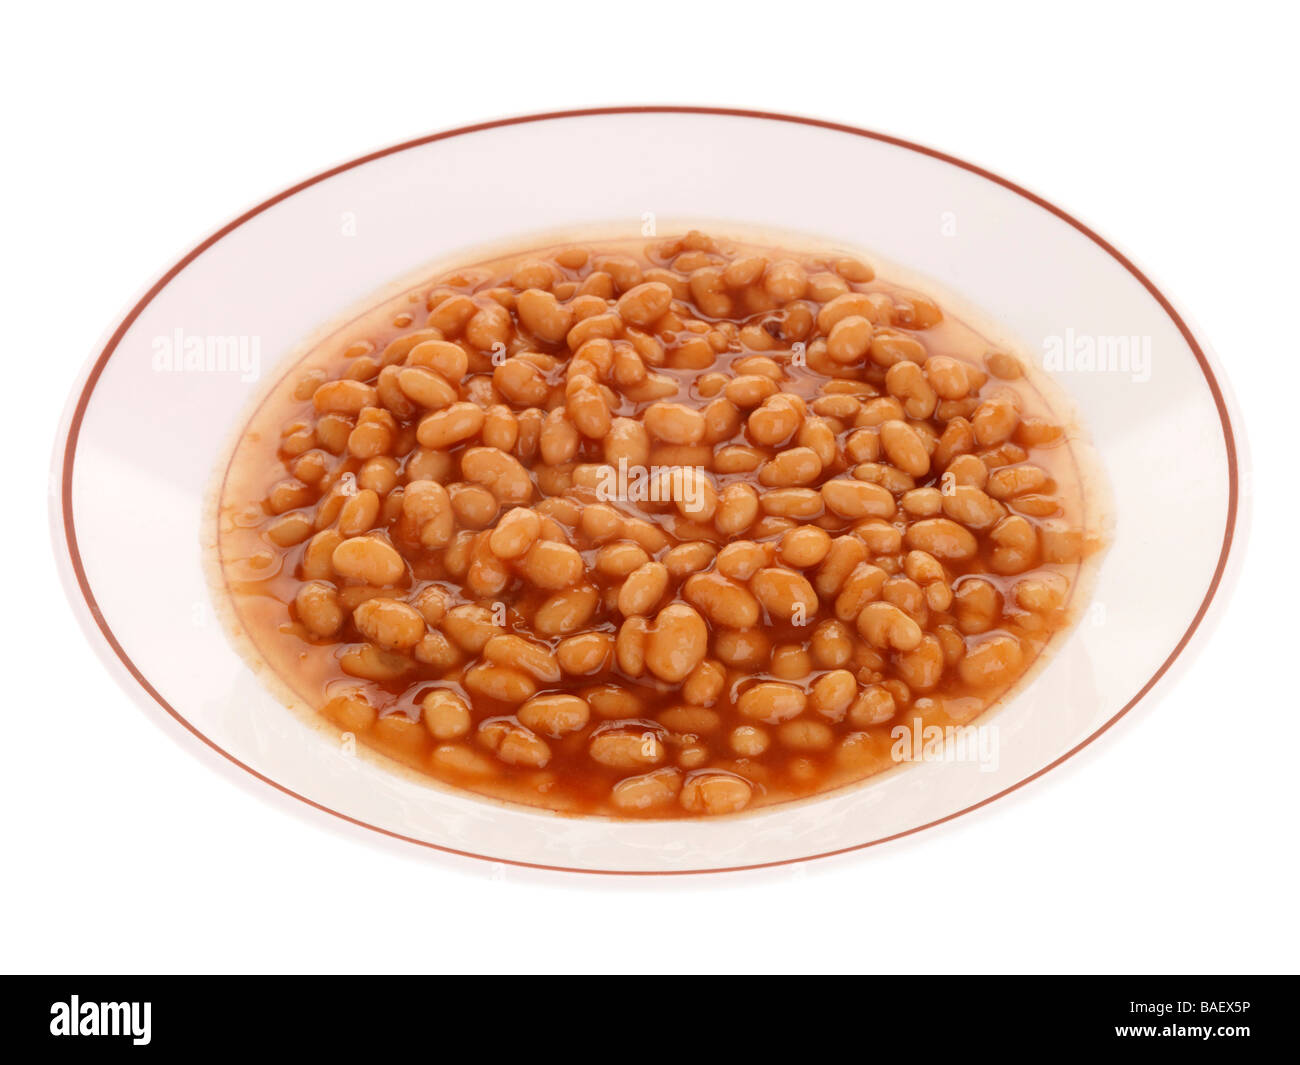 Bowl Of Baked Beans